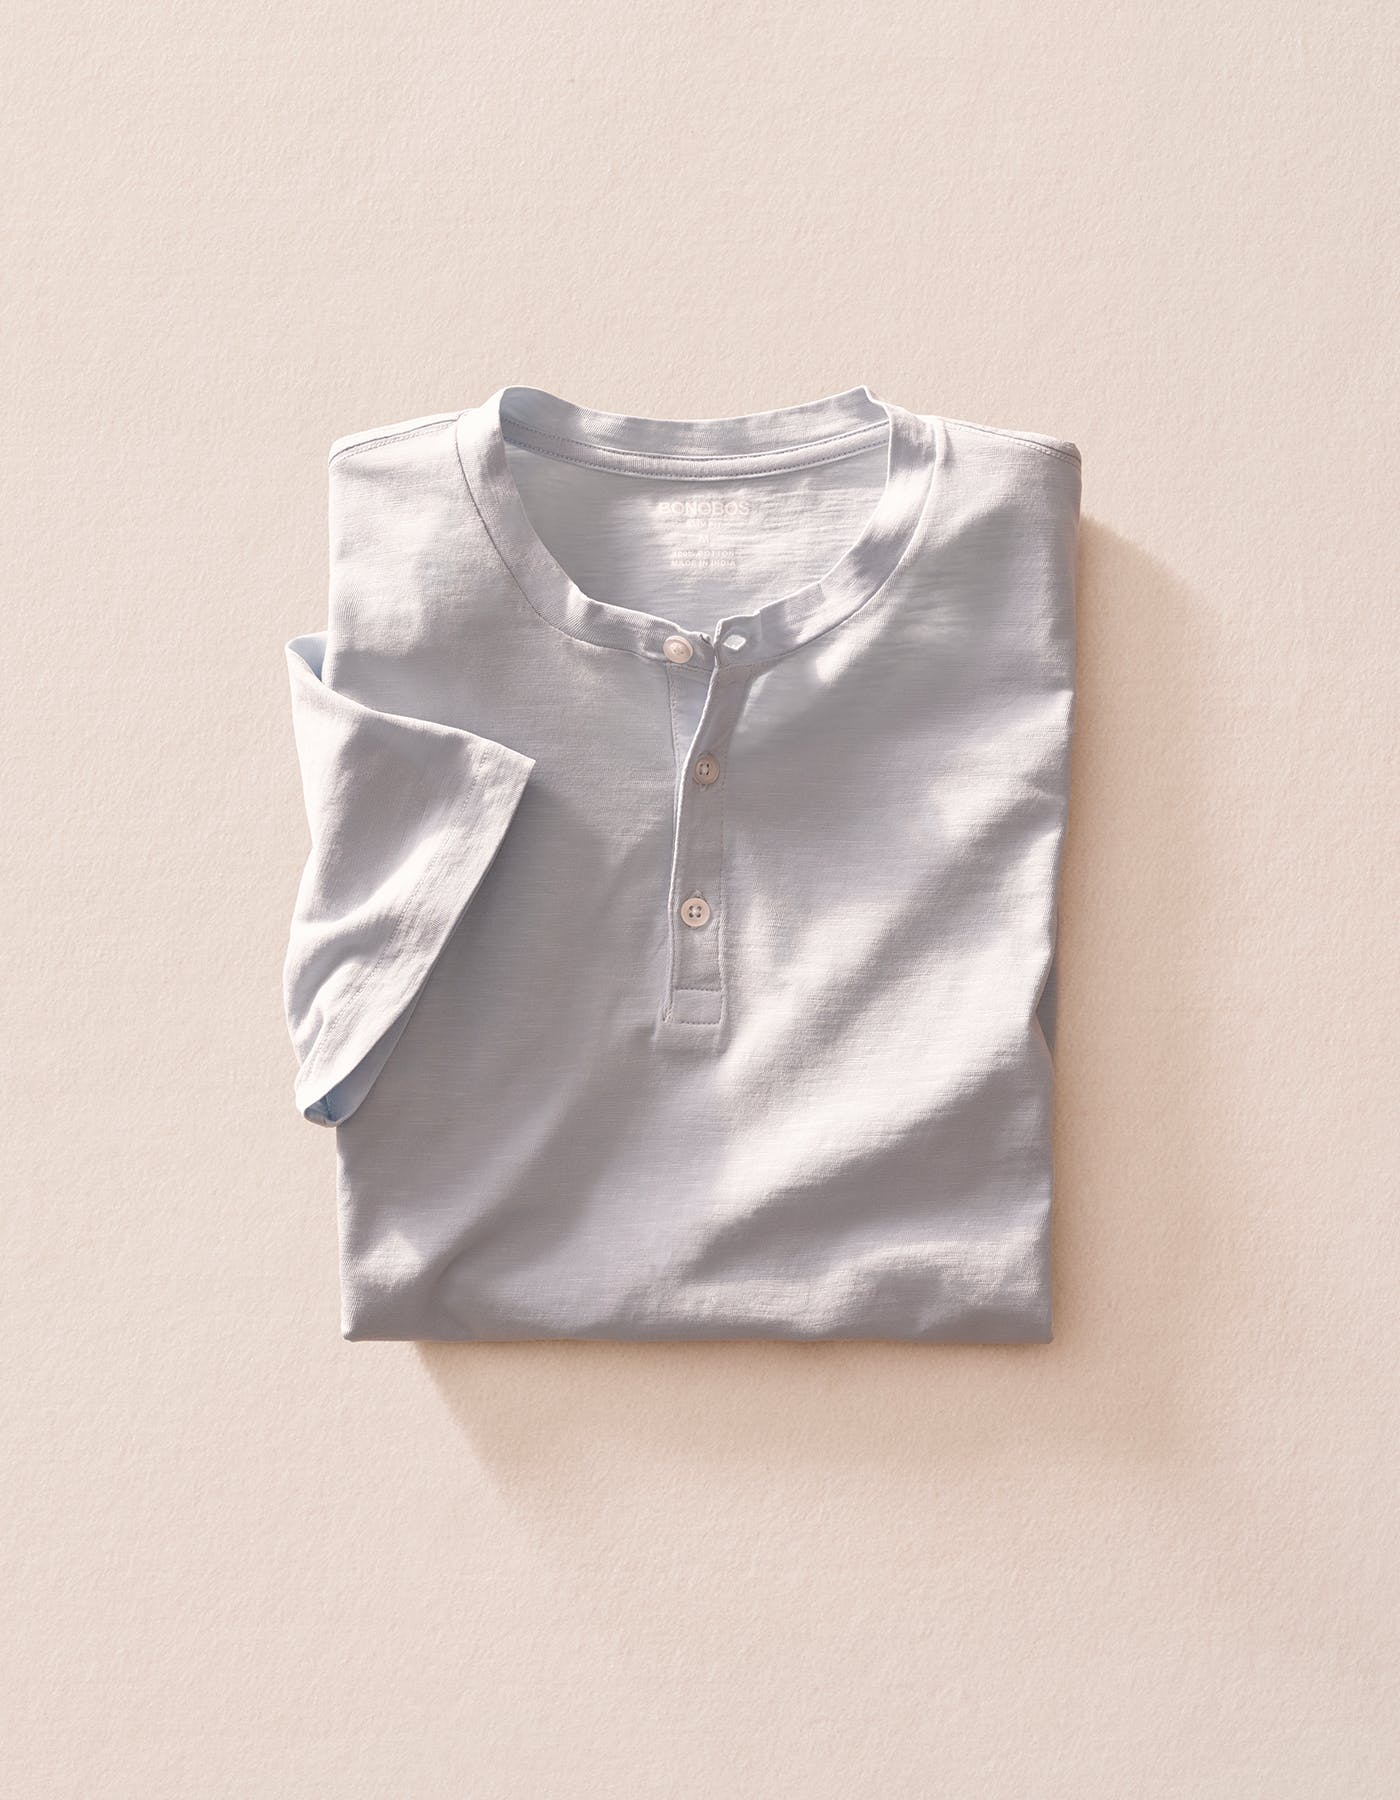 Image of a white henley